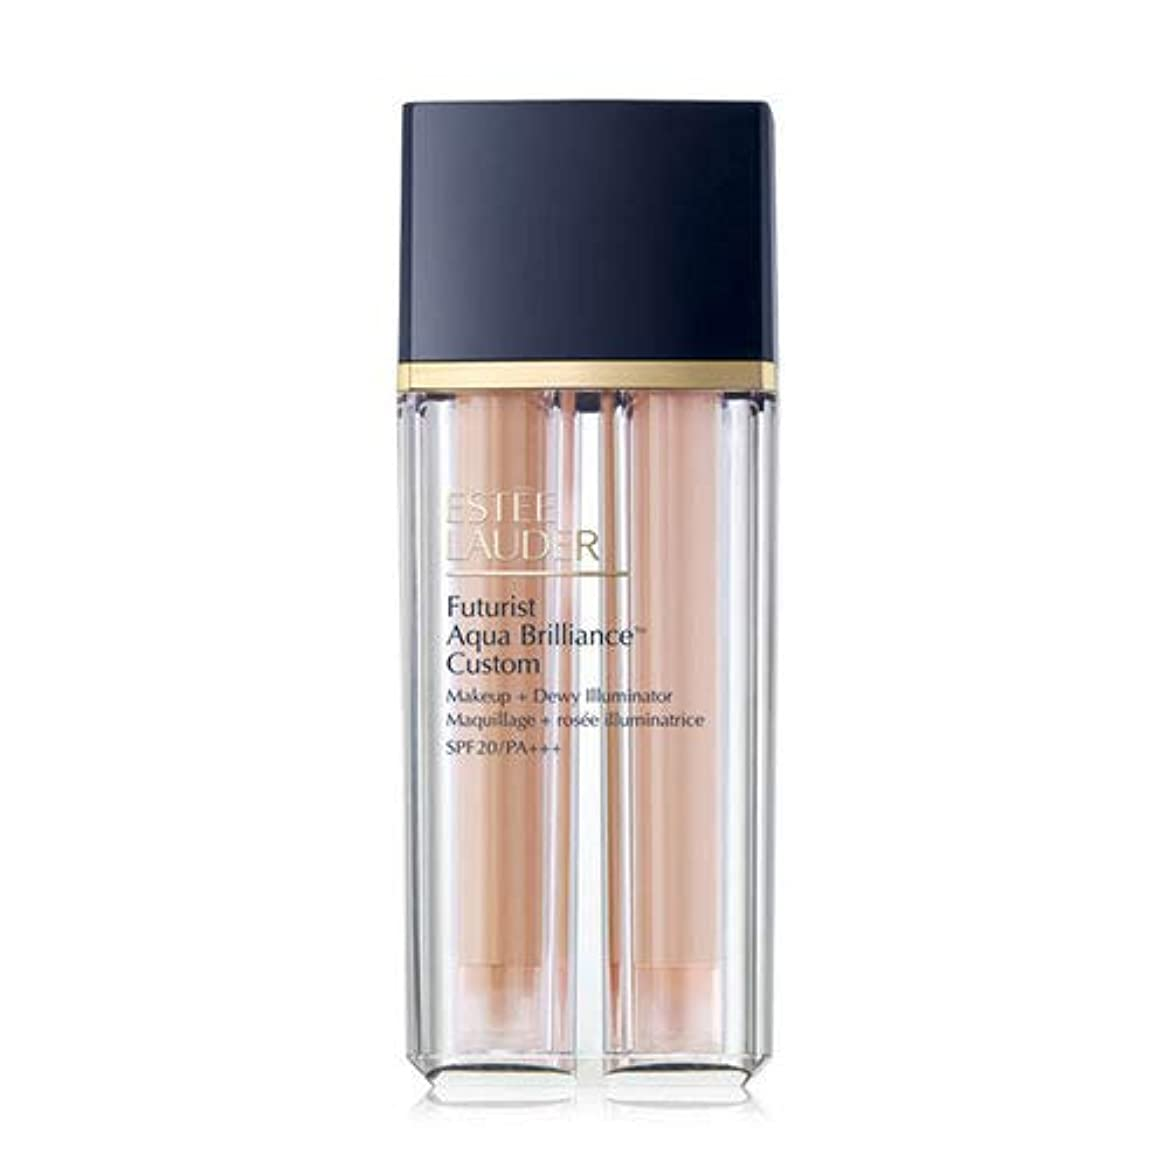 腐敗線もちろんEstee Lauder(エスティローダー) Futurist Aqua Brilliance Custom Foundation & Illuminator Duo SPF20/PA+++ 15ml ×2EA #2CO Cool Vanilla